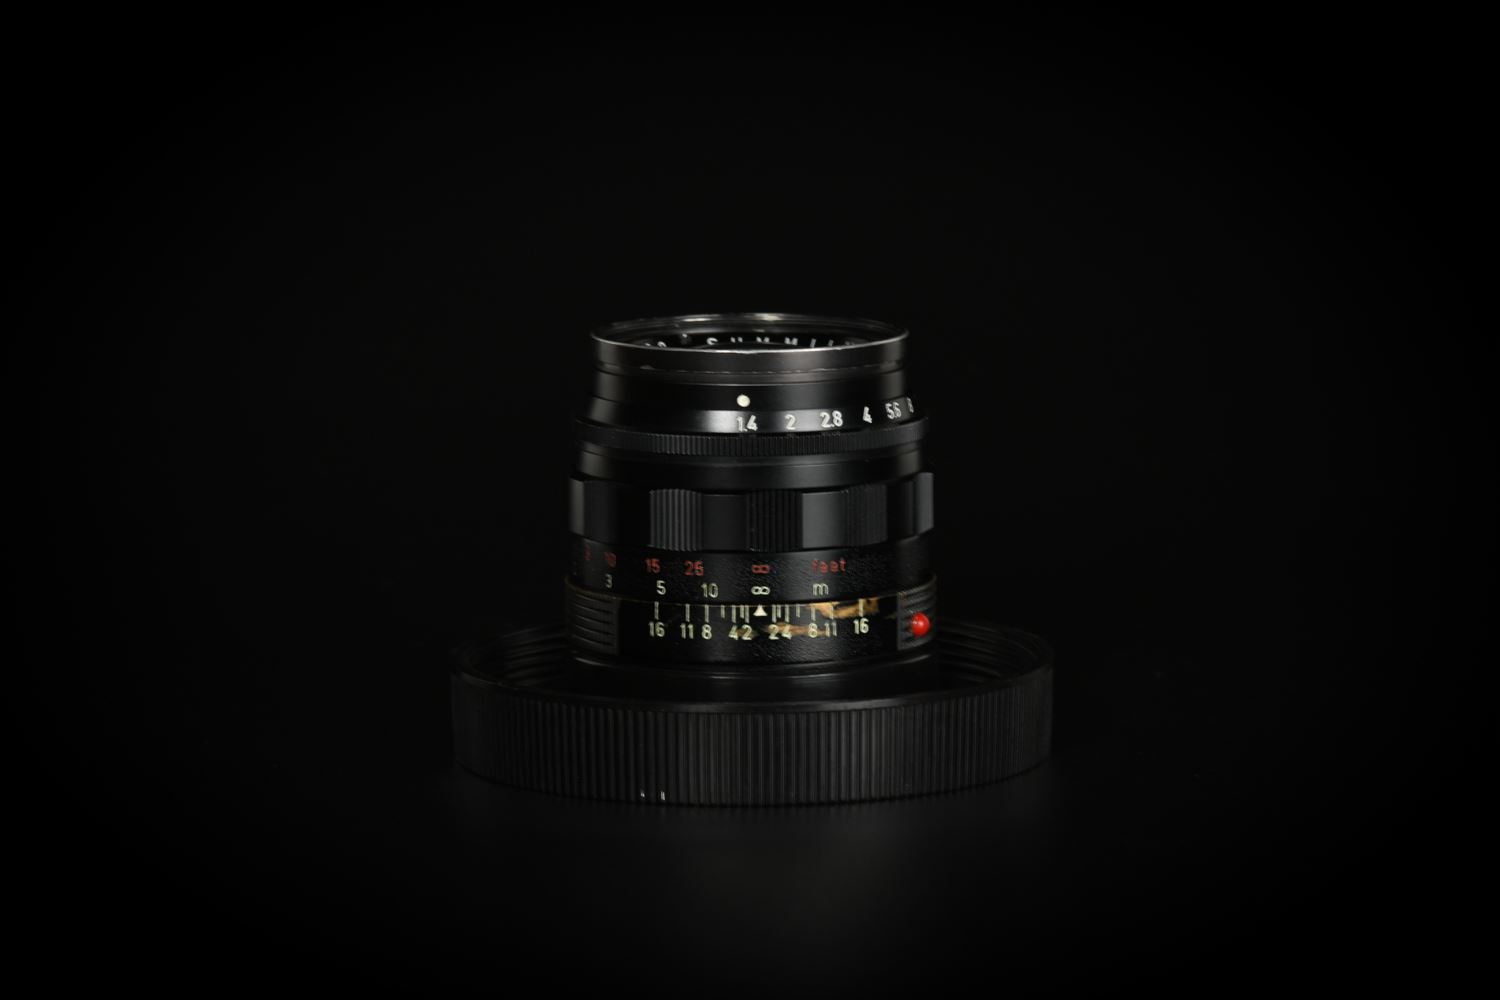 Picture of Leica Summilux-M 50mm f/1.4 Ver.2 E43 Black Paint